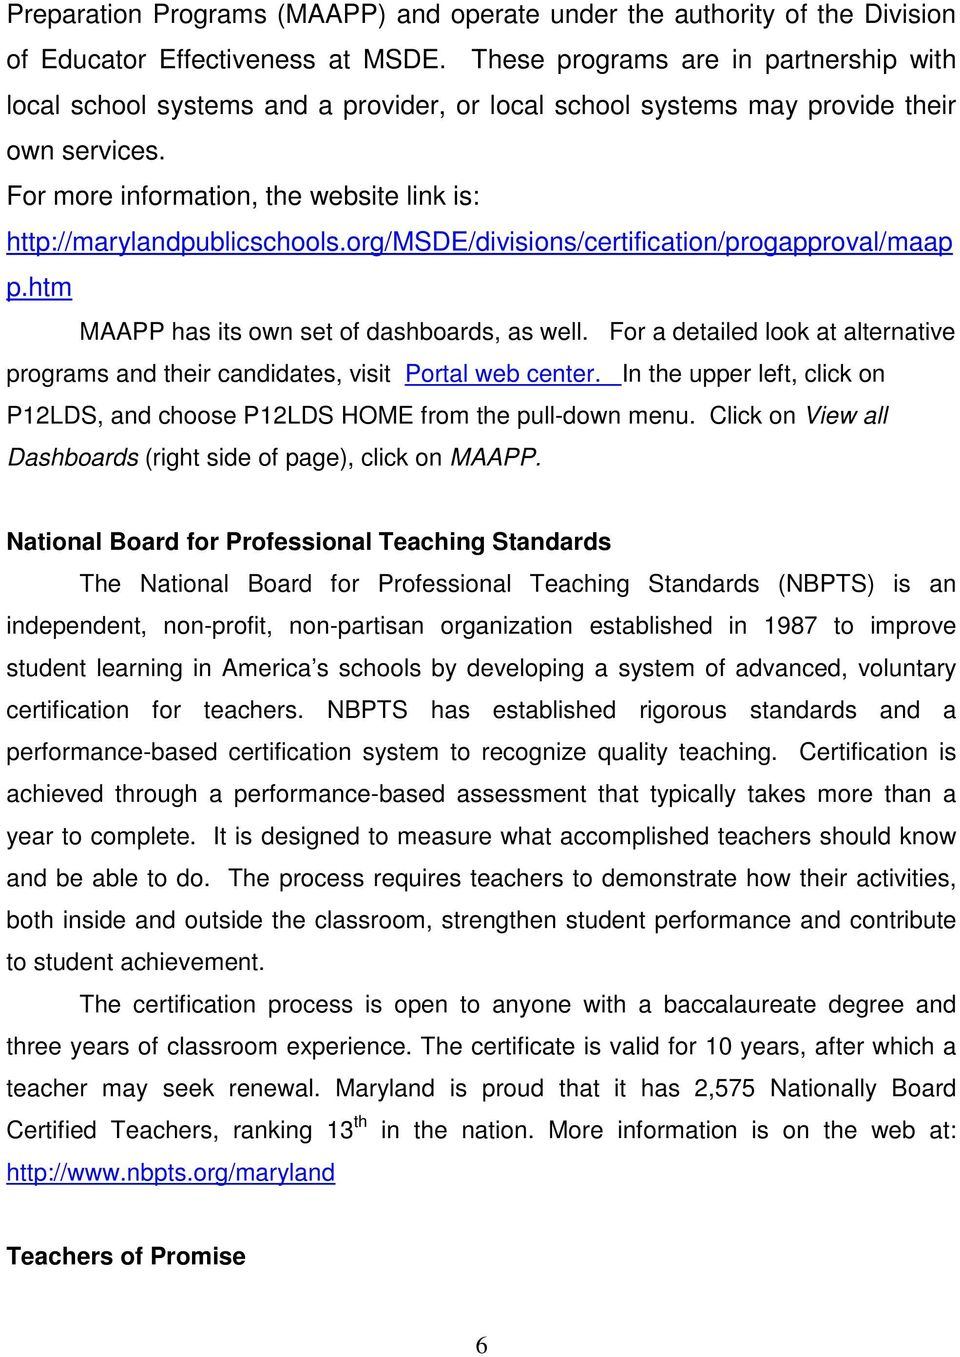 Teacher Staffing Report Maryland State Department Of Education 200